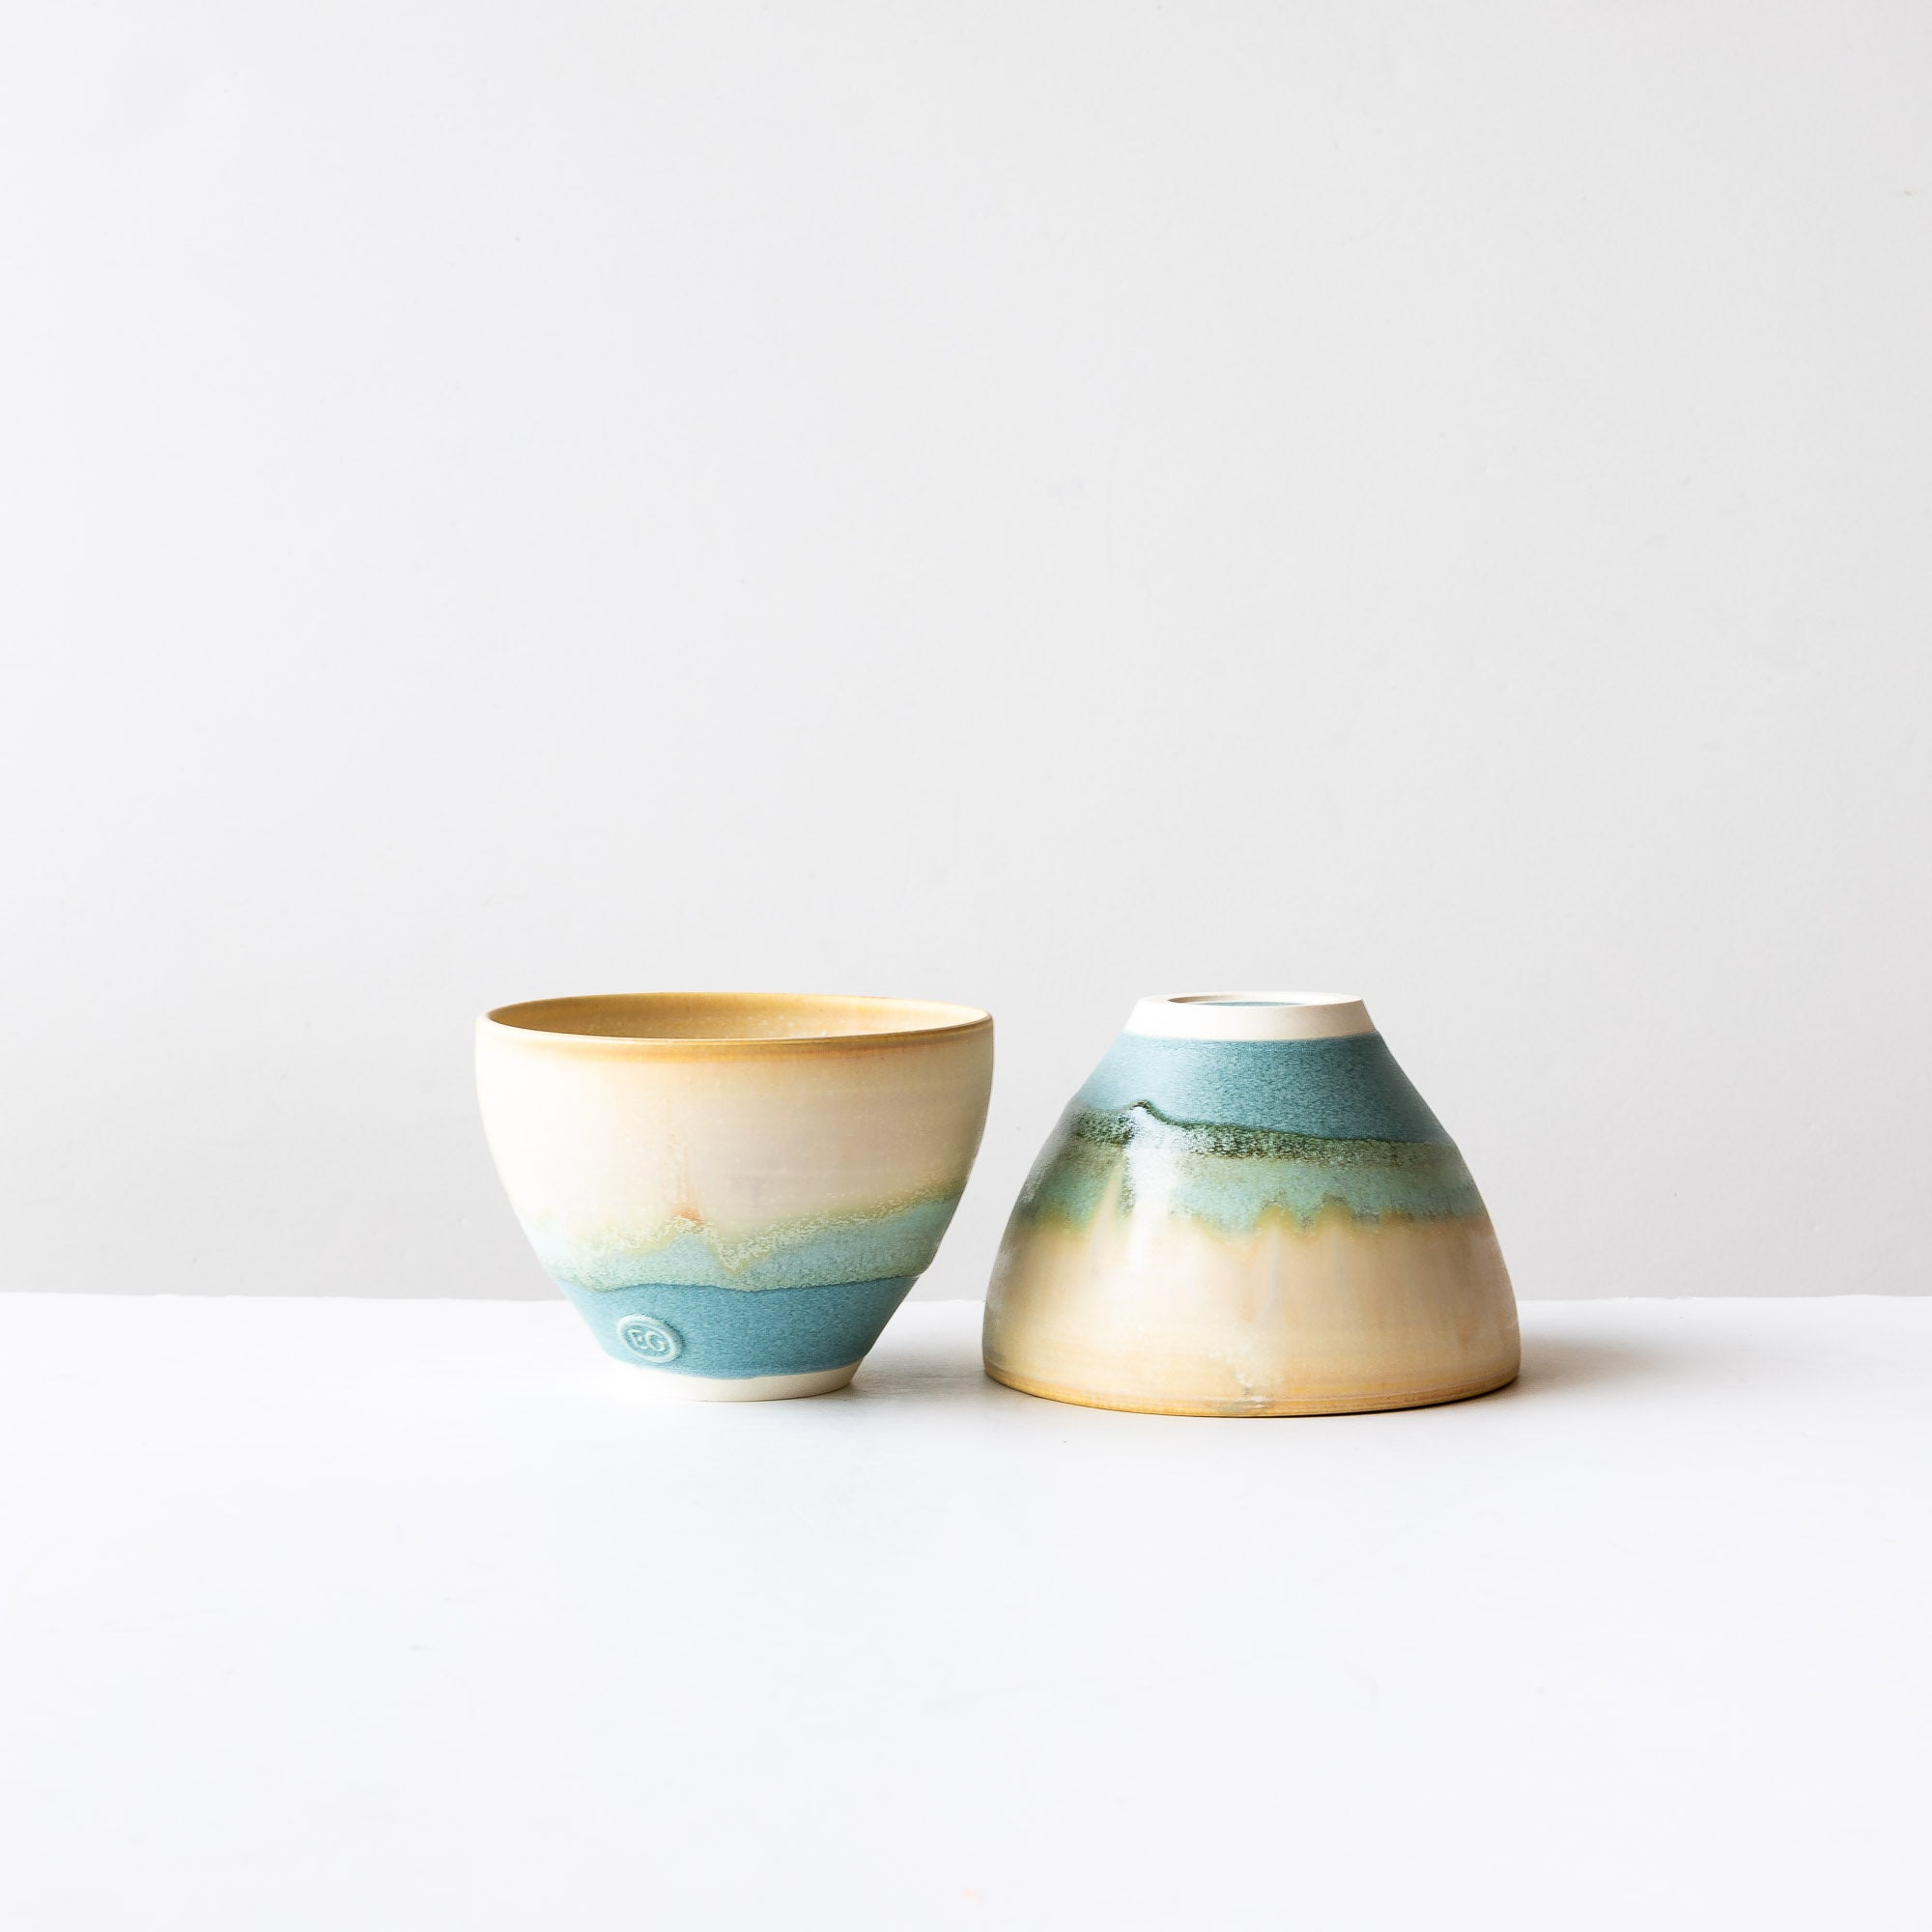 Handmade Ceramic Stoneware Bowl - Three Colours - Sold by Chic & Basta